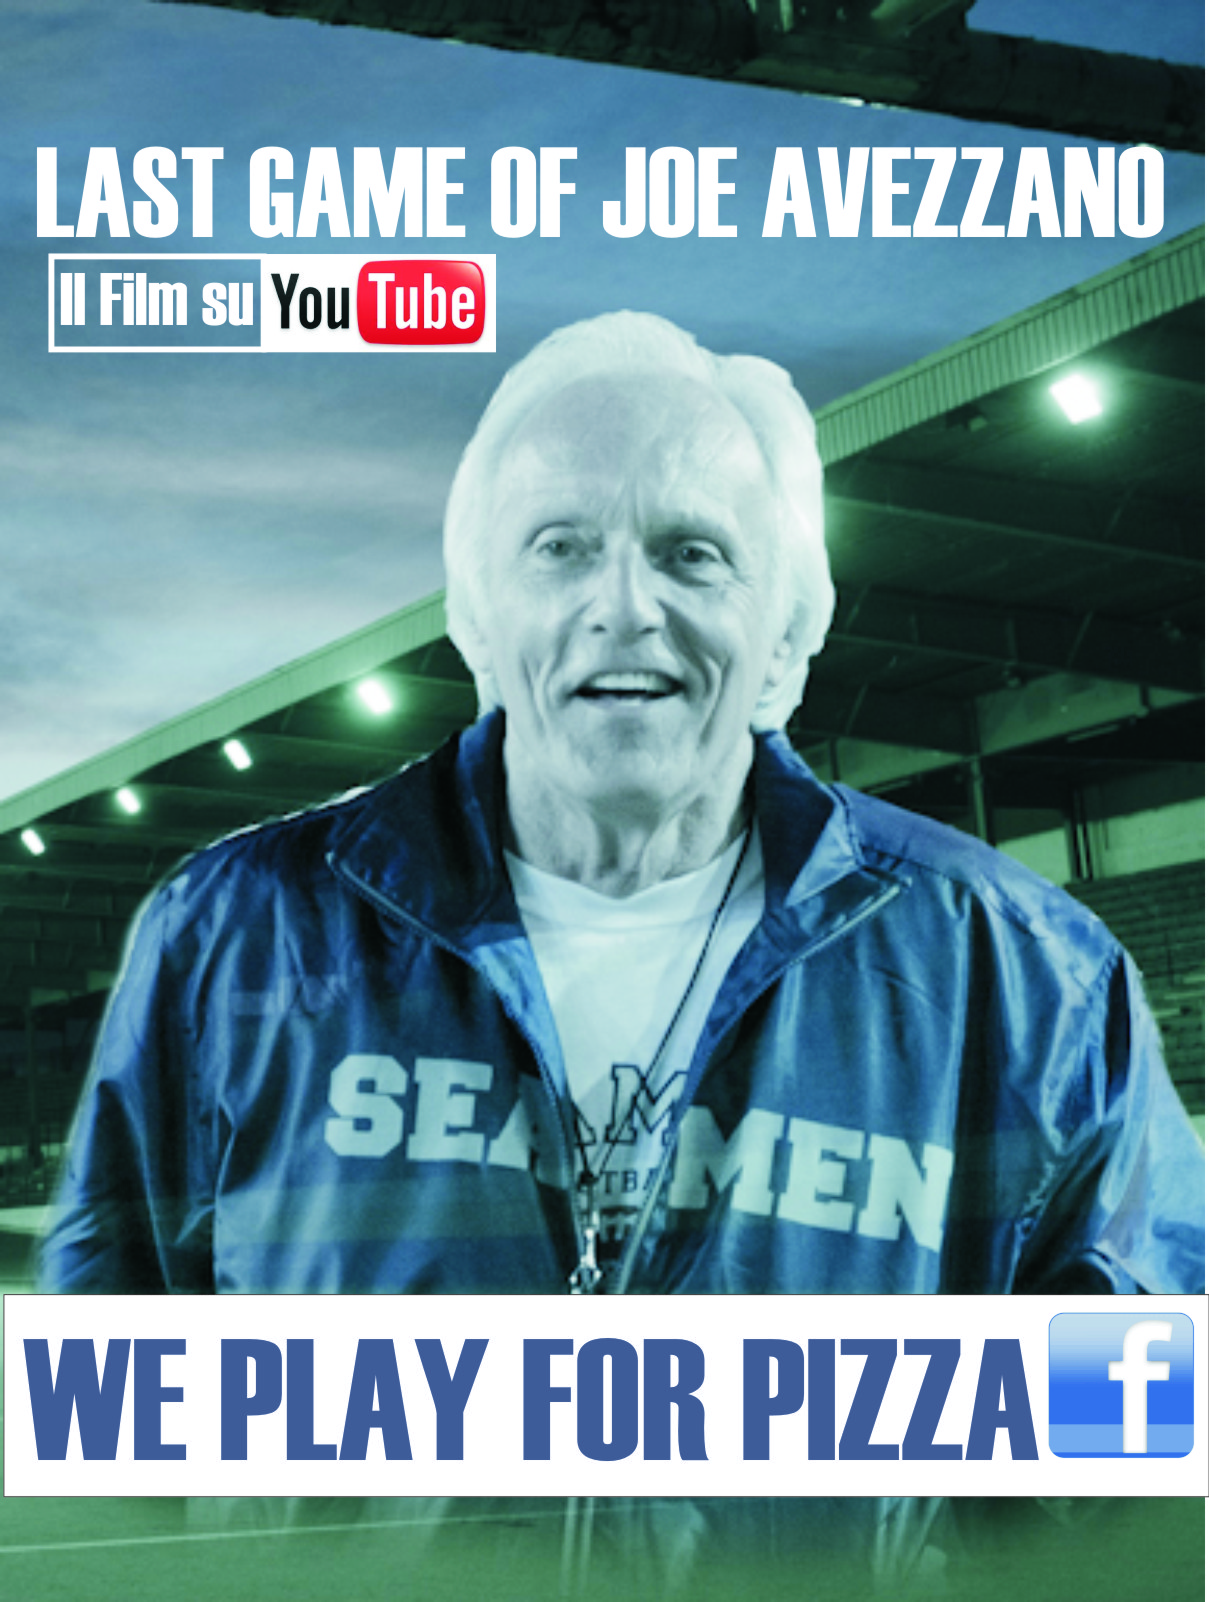 Joe Avezzano_Banner_filmato_You_Tube